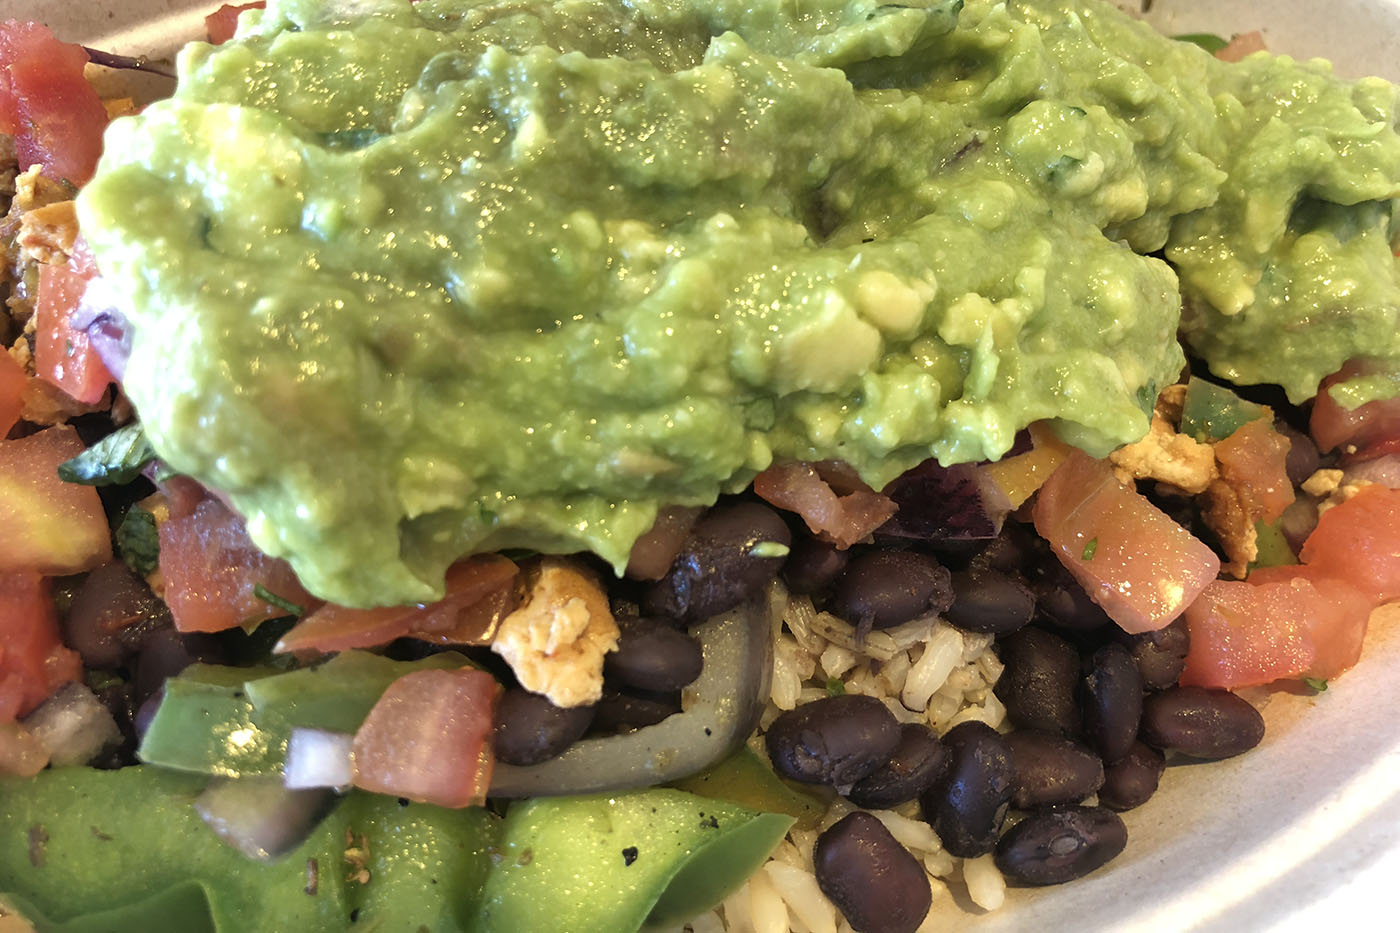 chipotle burrito bowl is vegan fast food with sofritas and guacamole